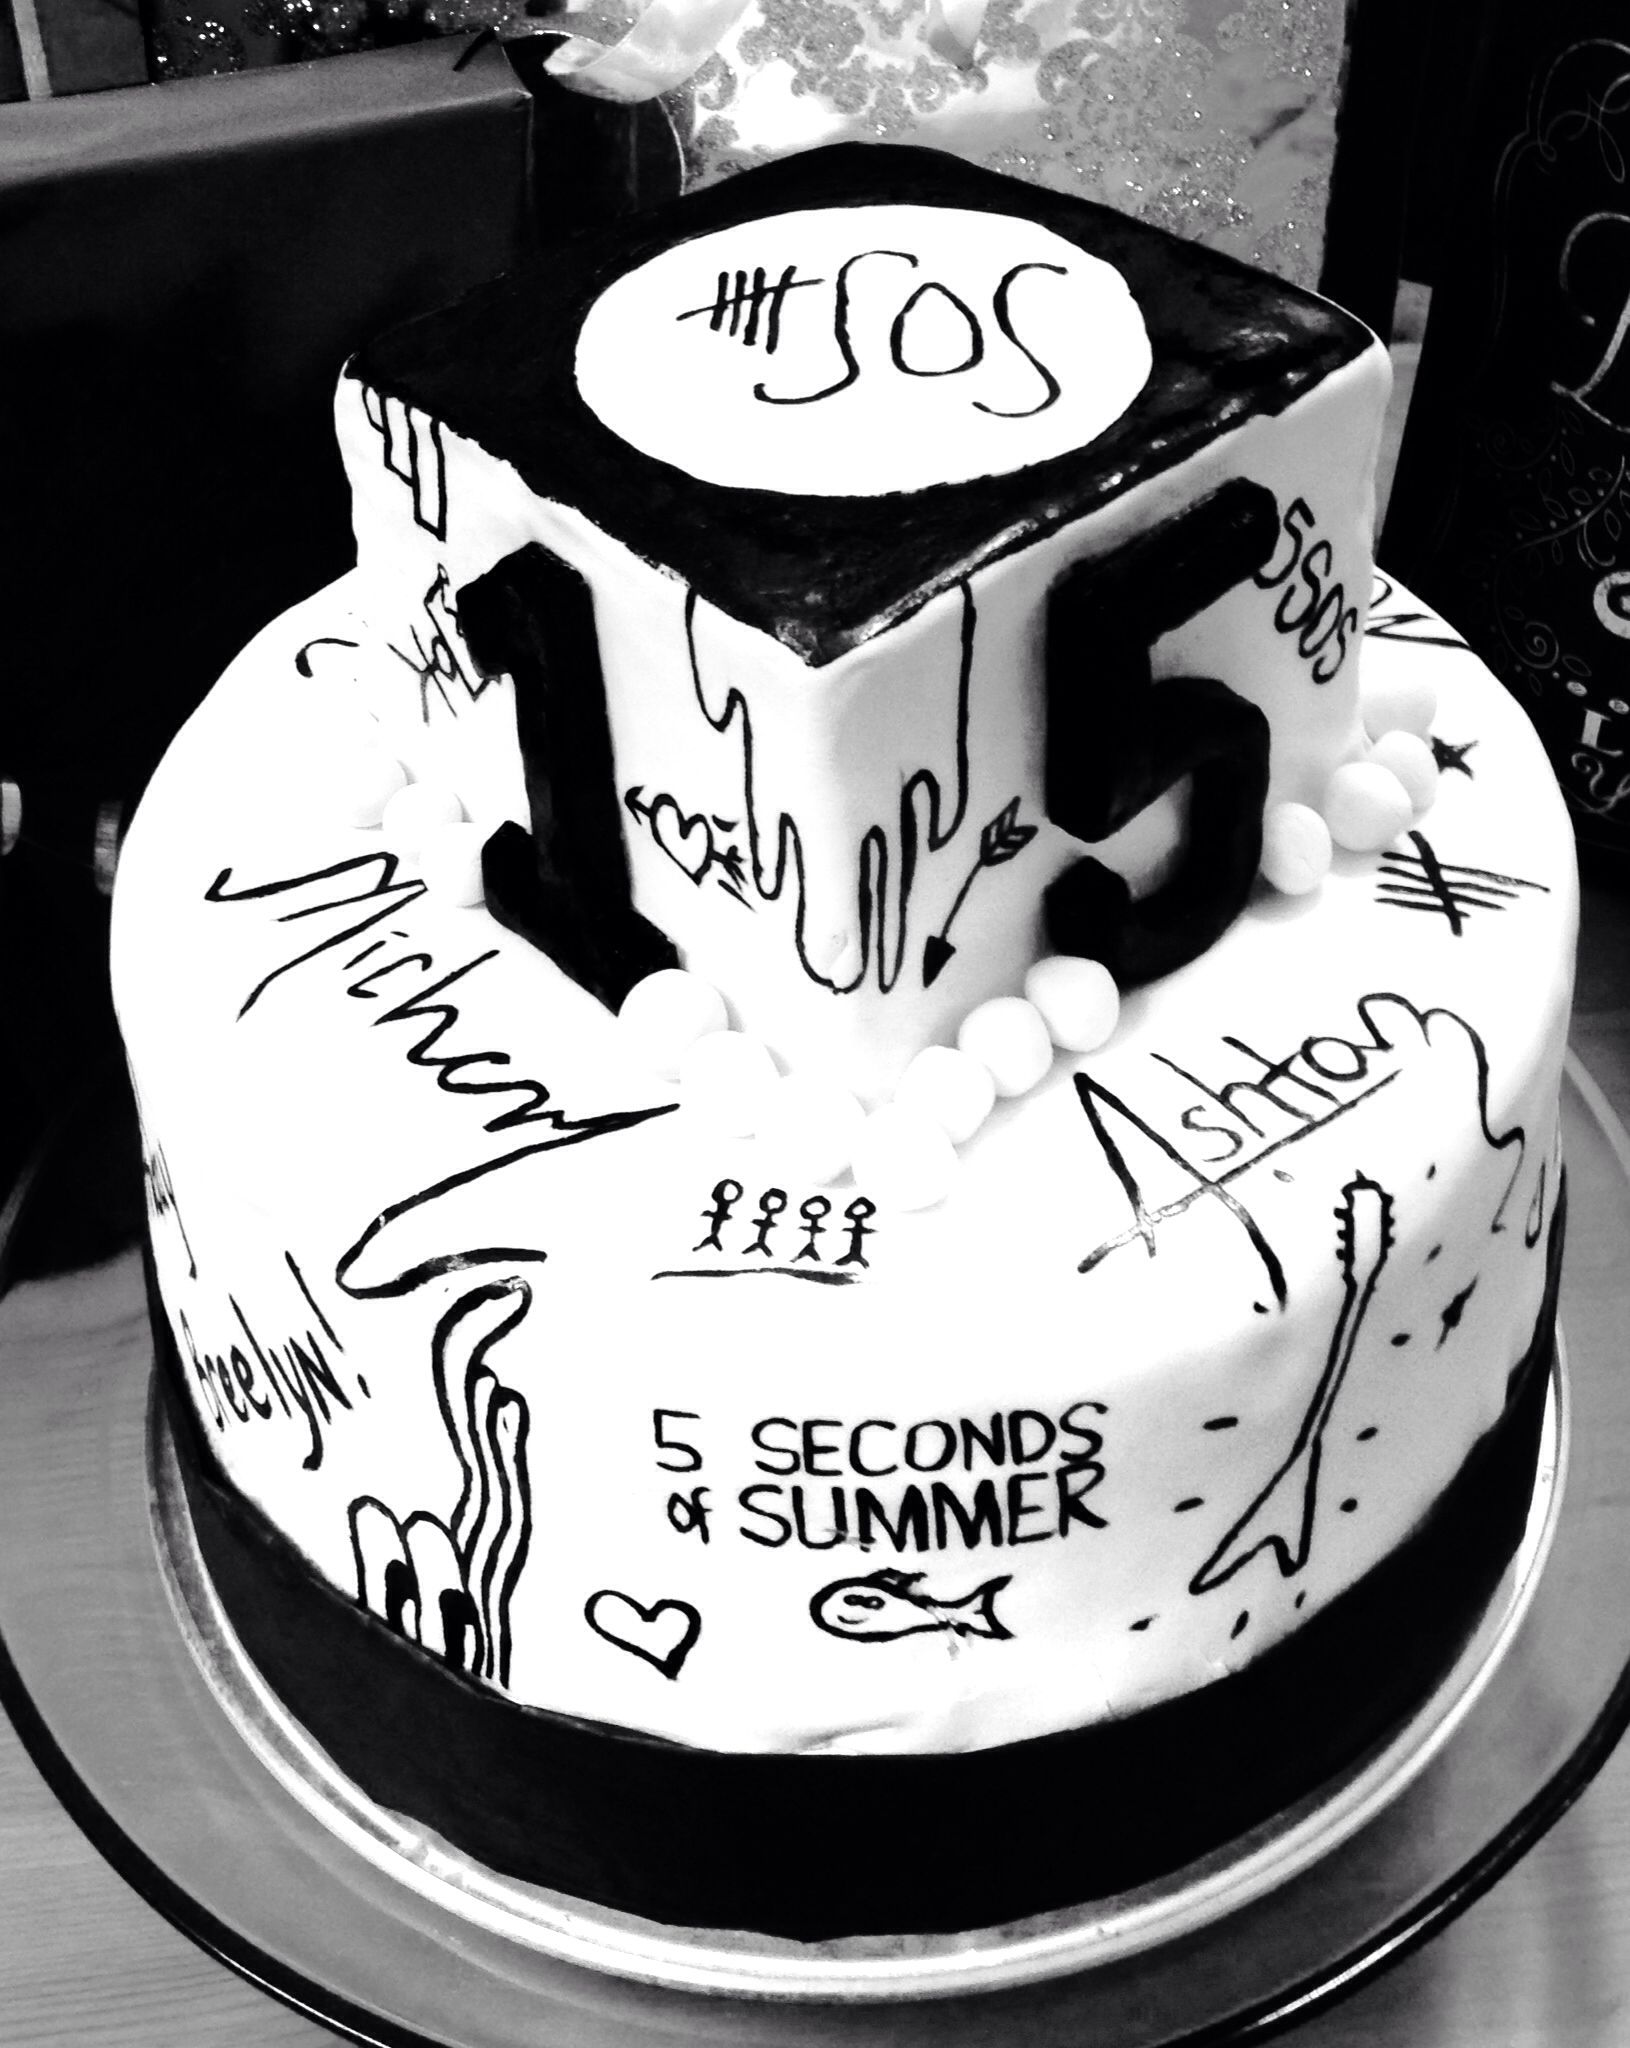 5 Seconds of Summer Birthday Cake  What Dad's would do for